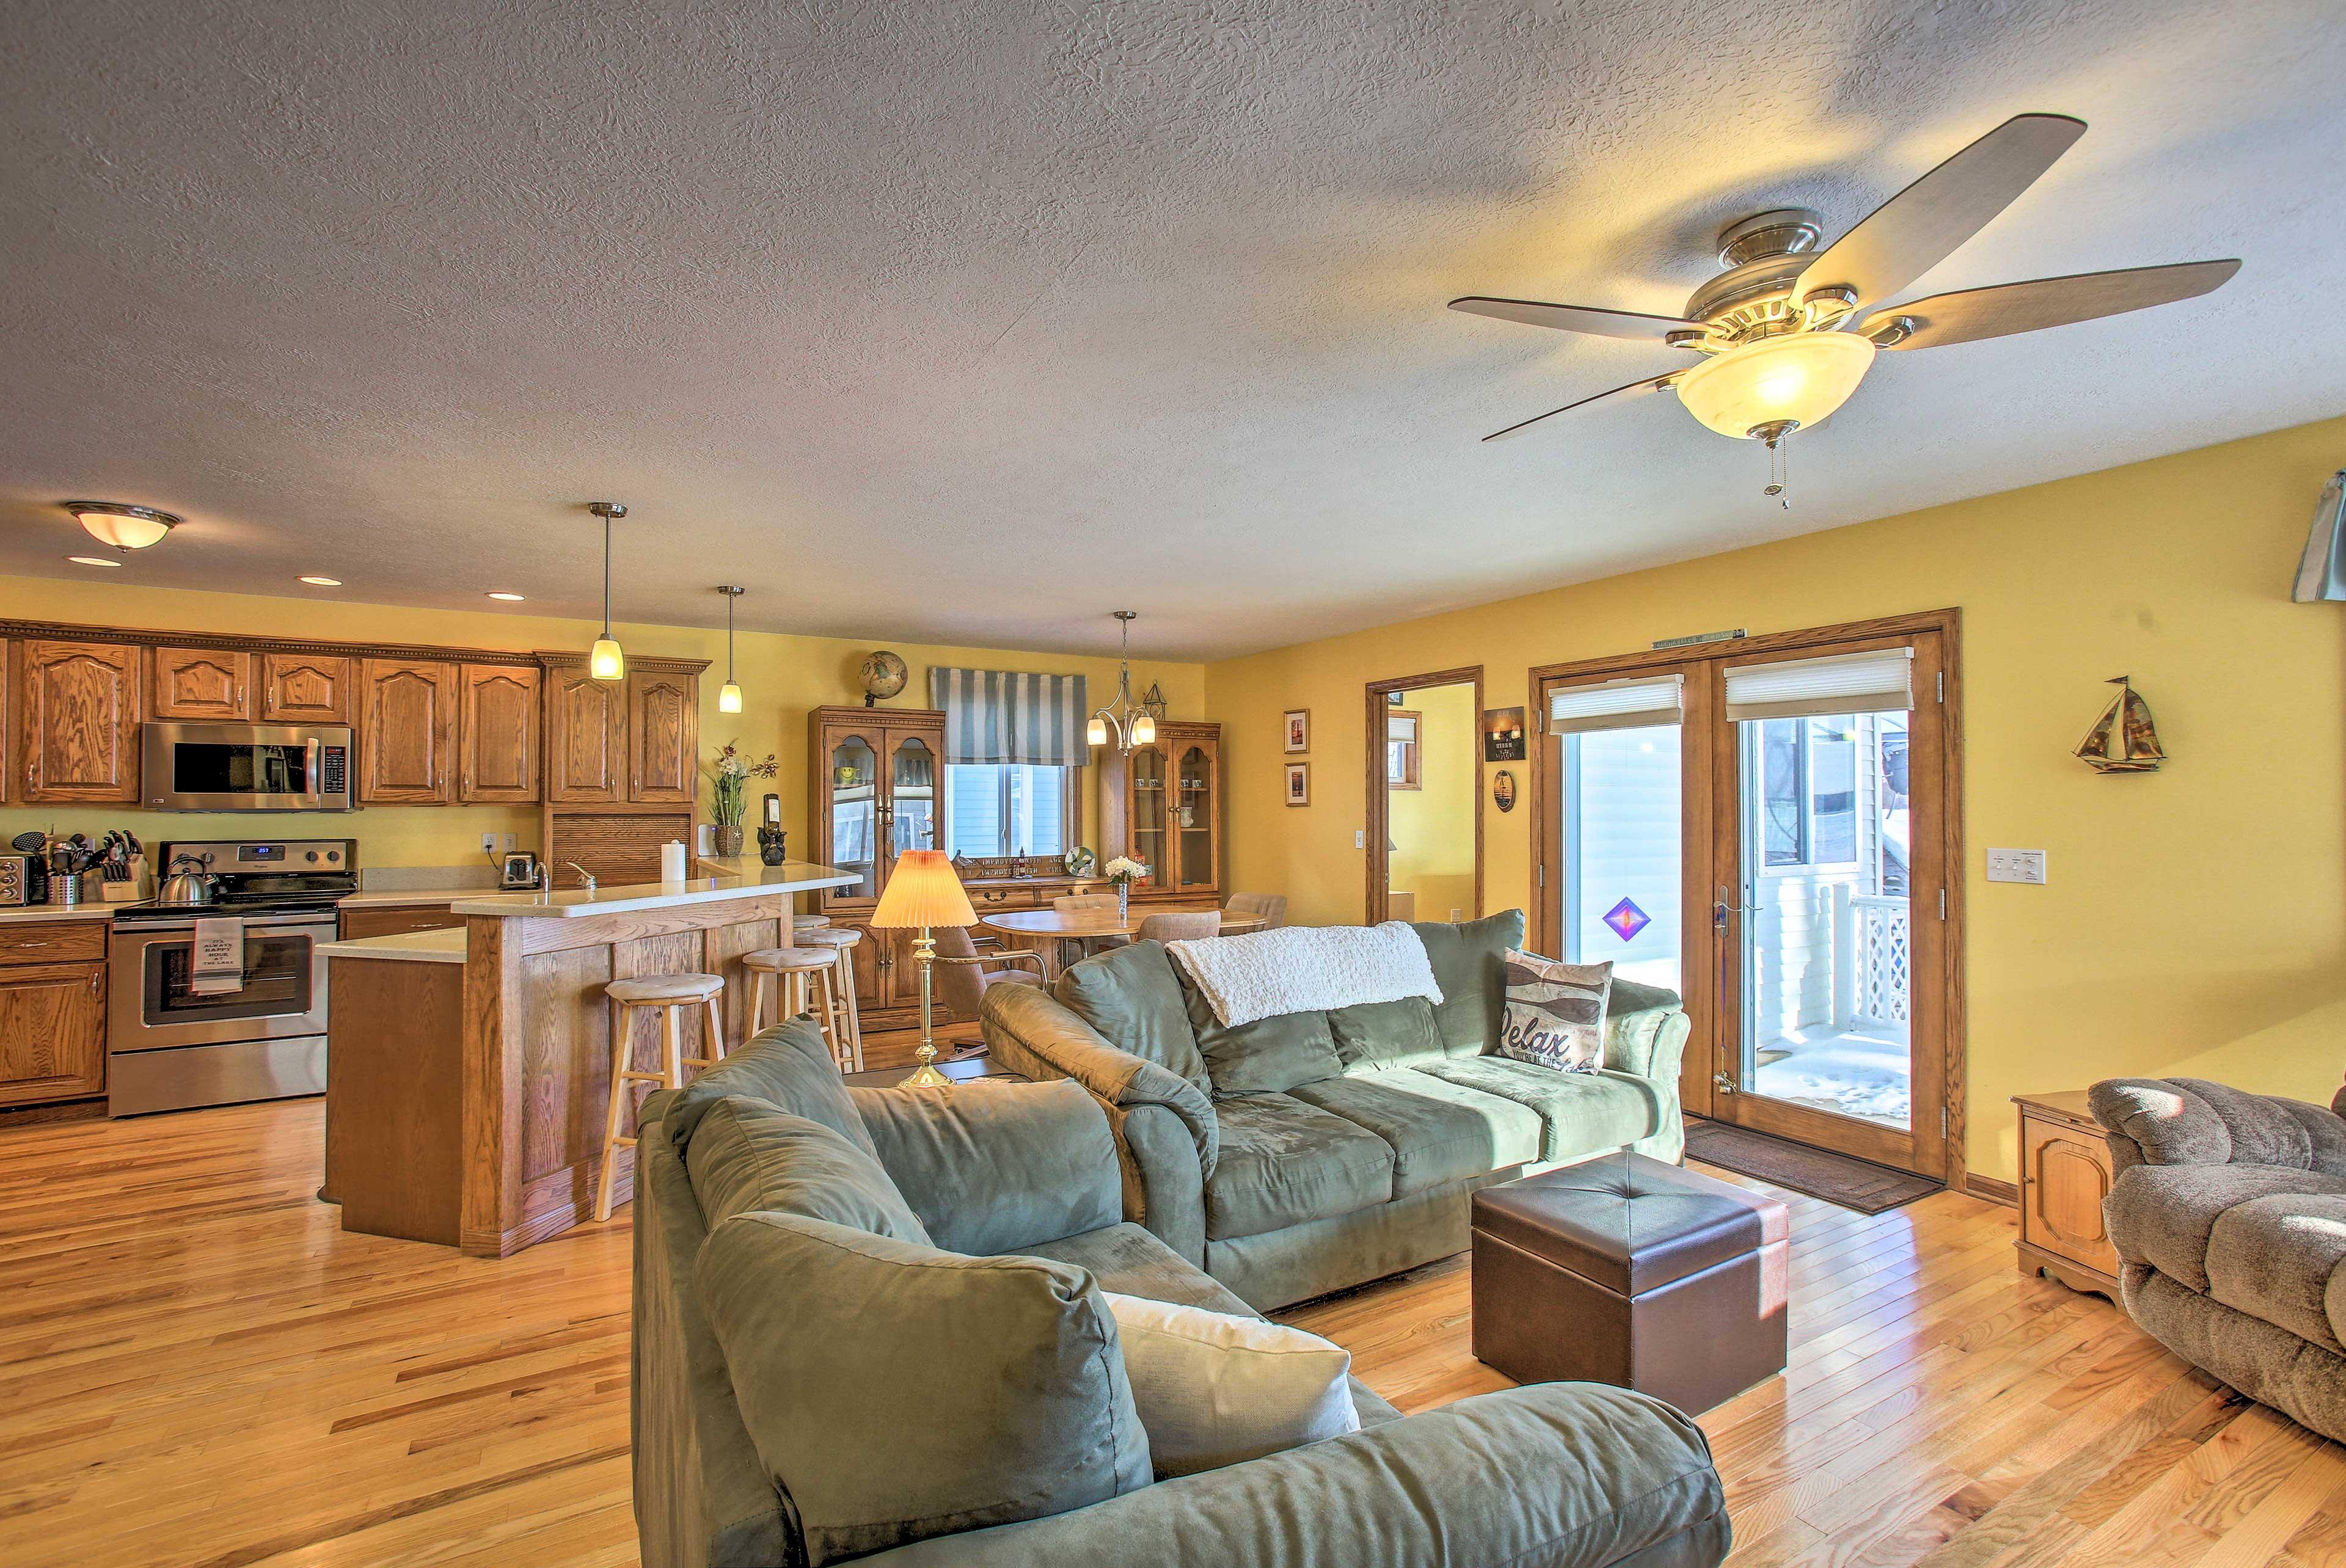 The 3-bedroom, 2-bathroom home is perfect for a family of 11.